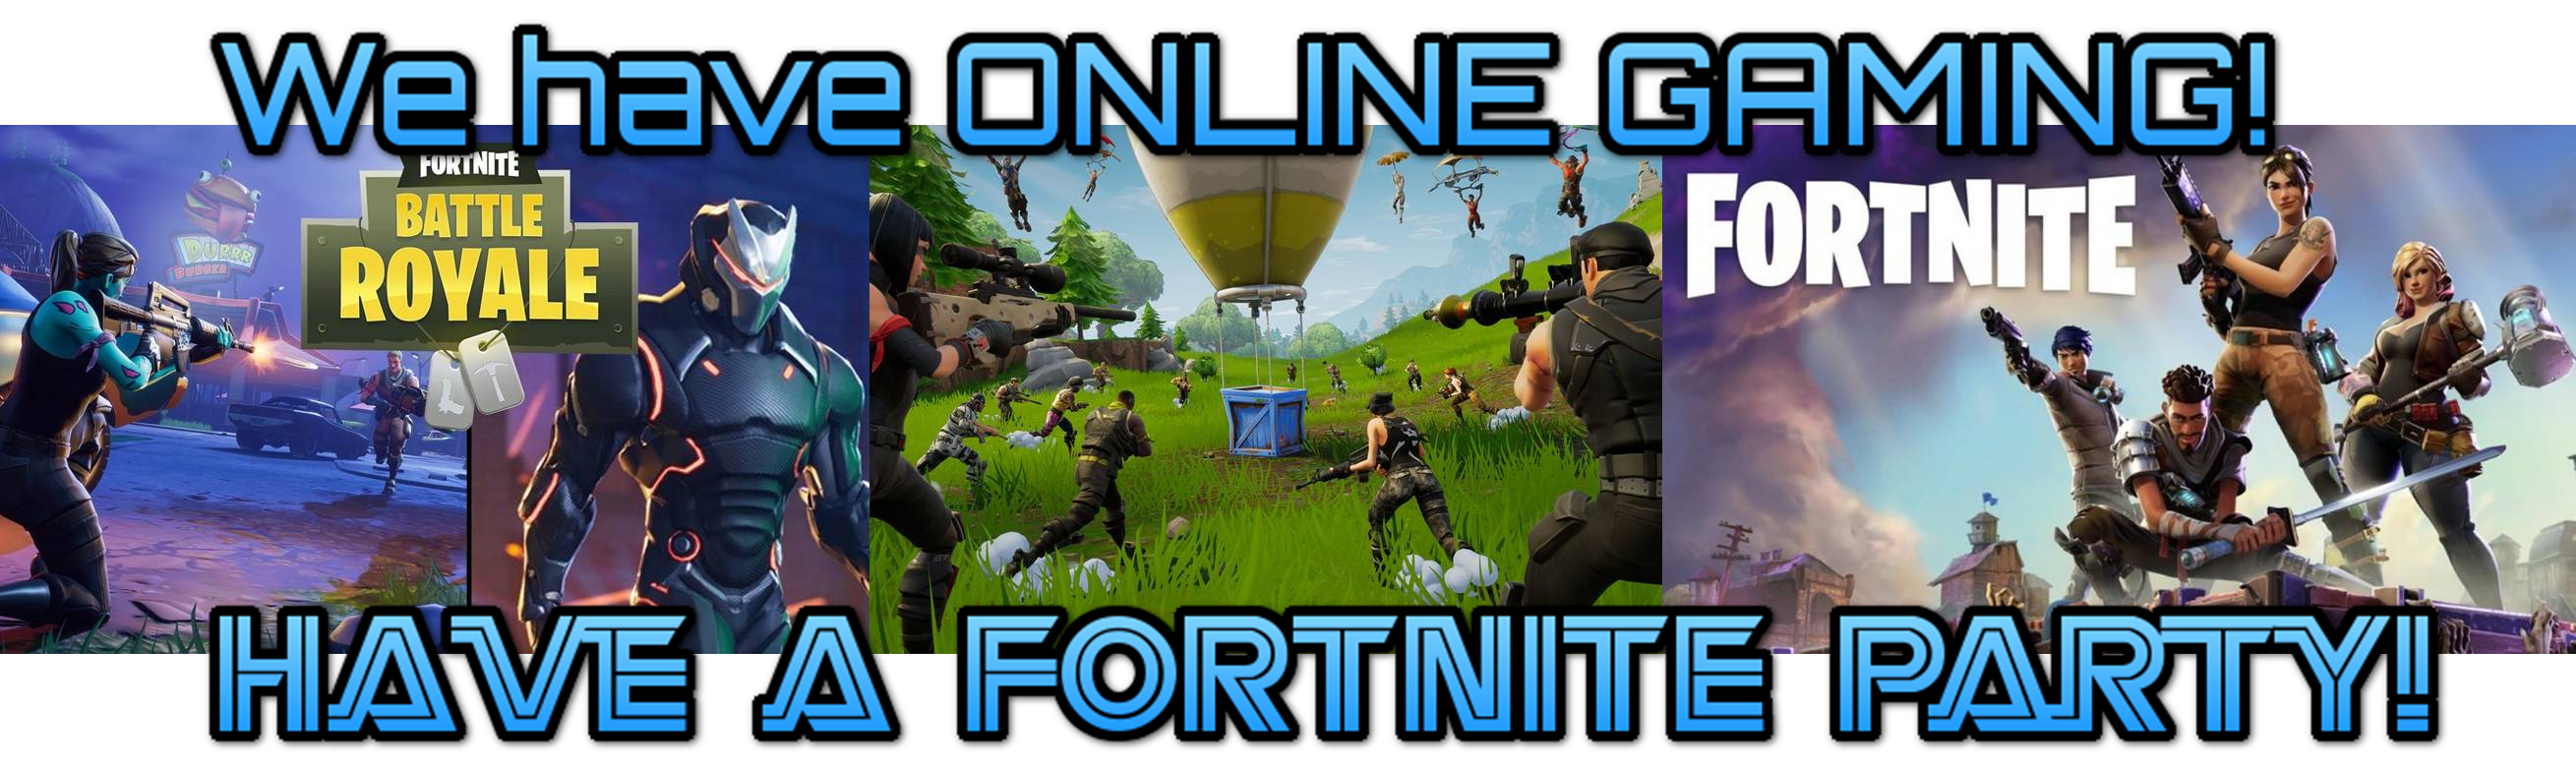 Fortnite party - online gaming birthday party in Chicago Illinois